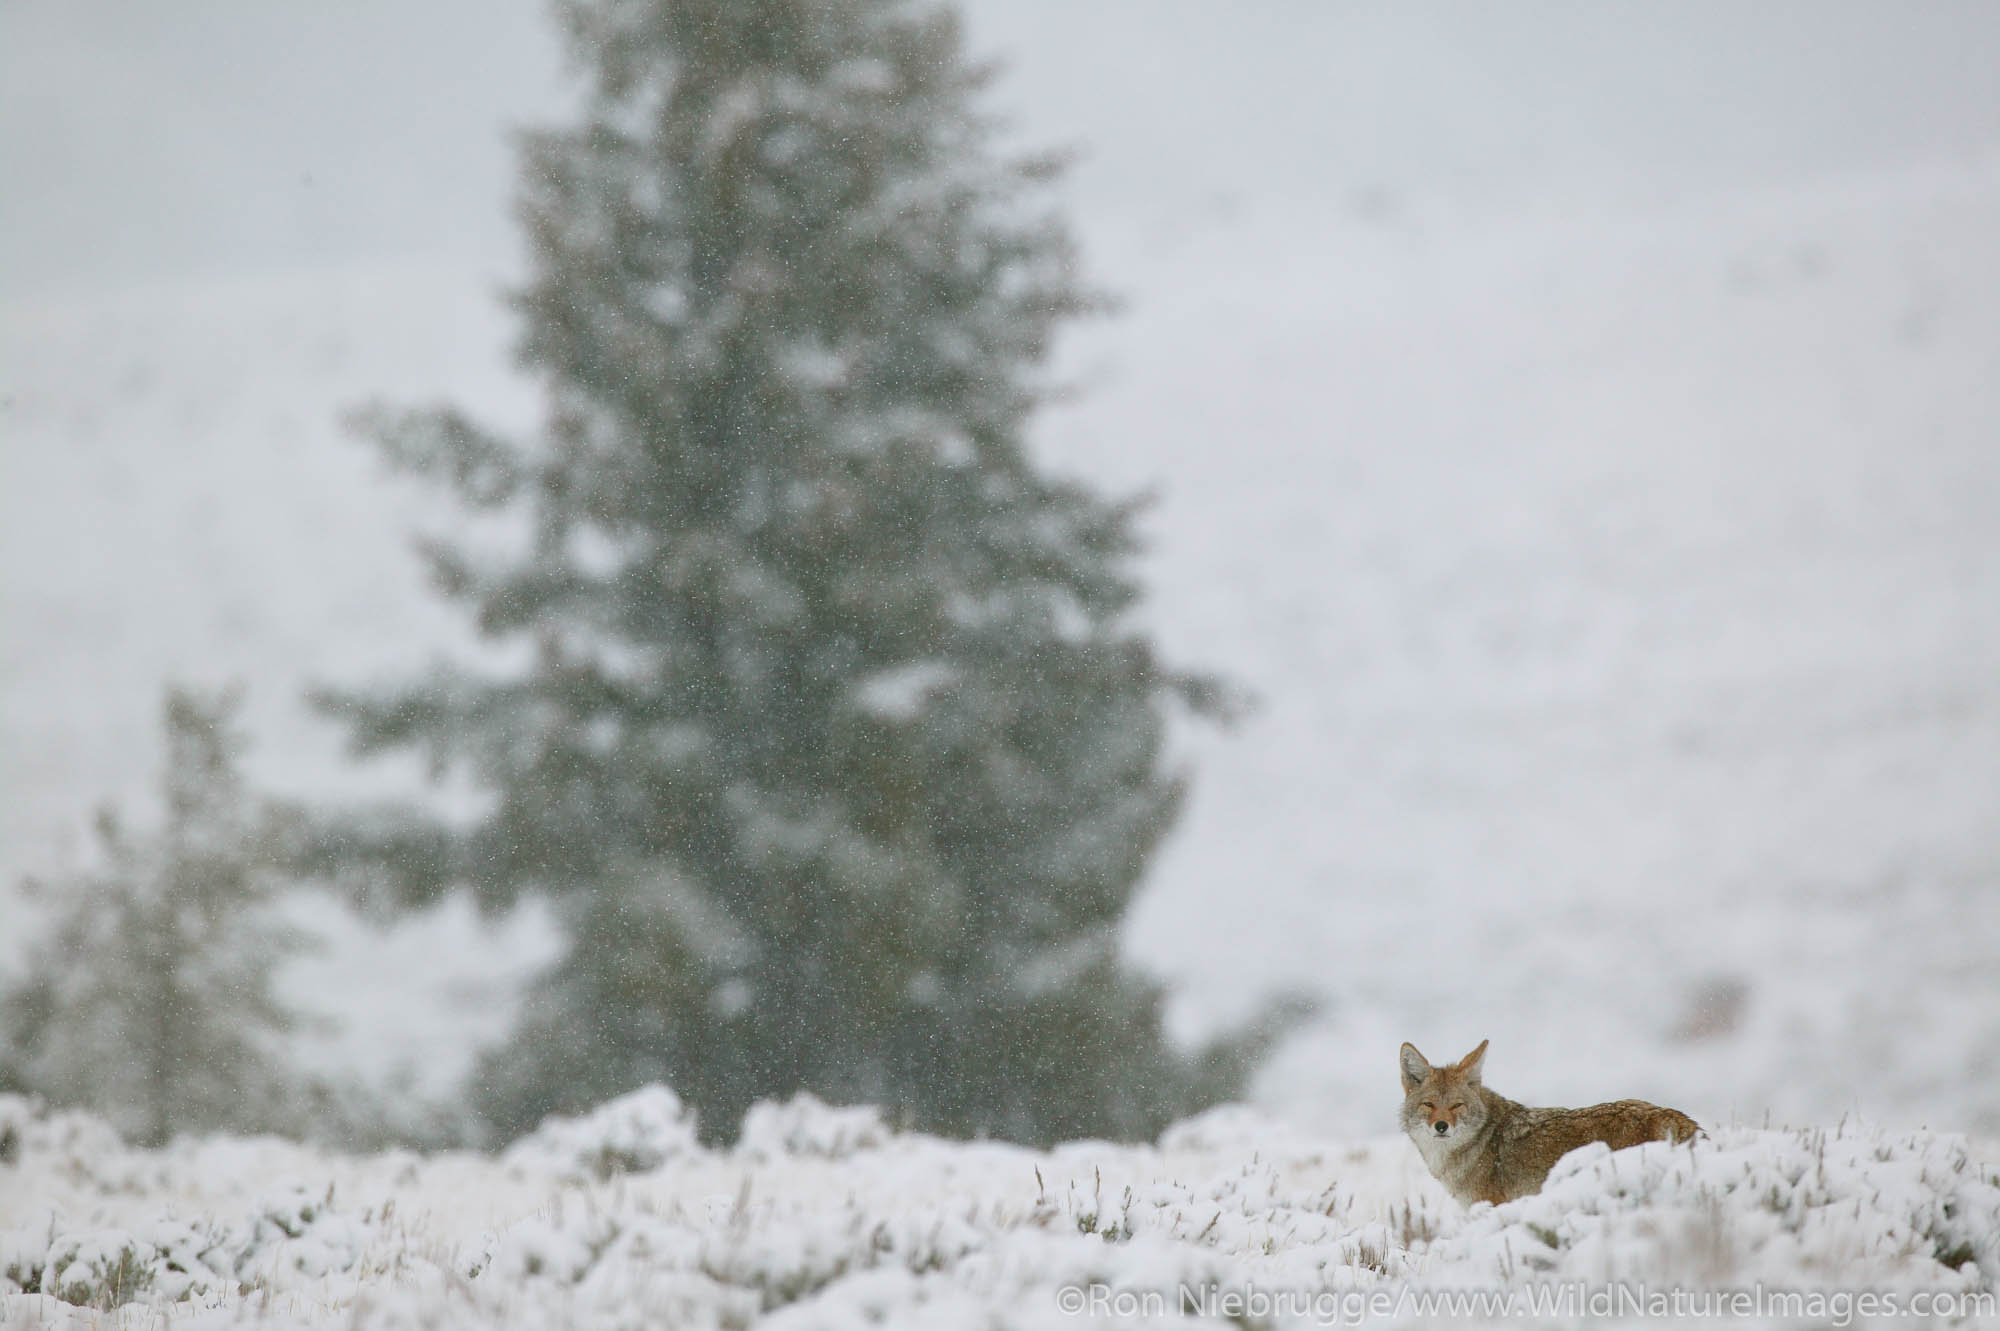 Coyote in a snow storm, Yellowstone National Park, Wyoming.